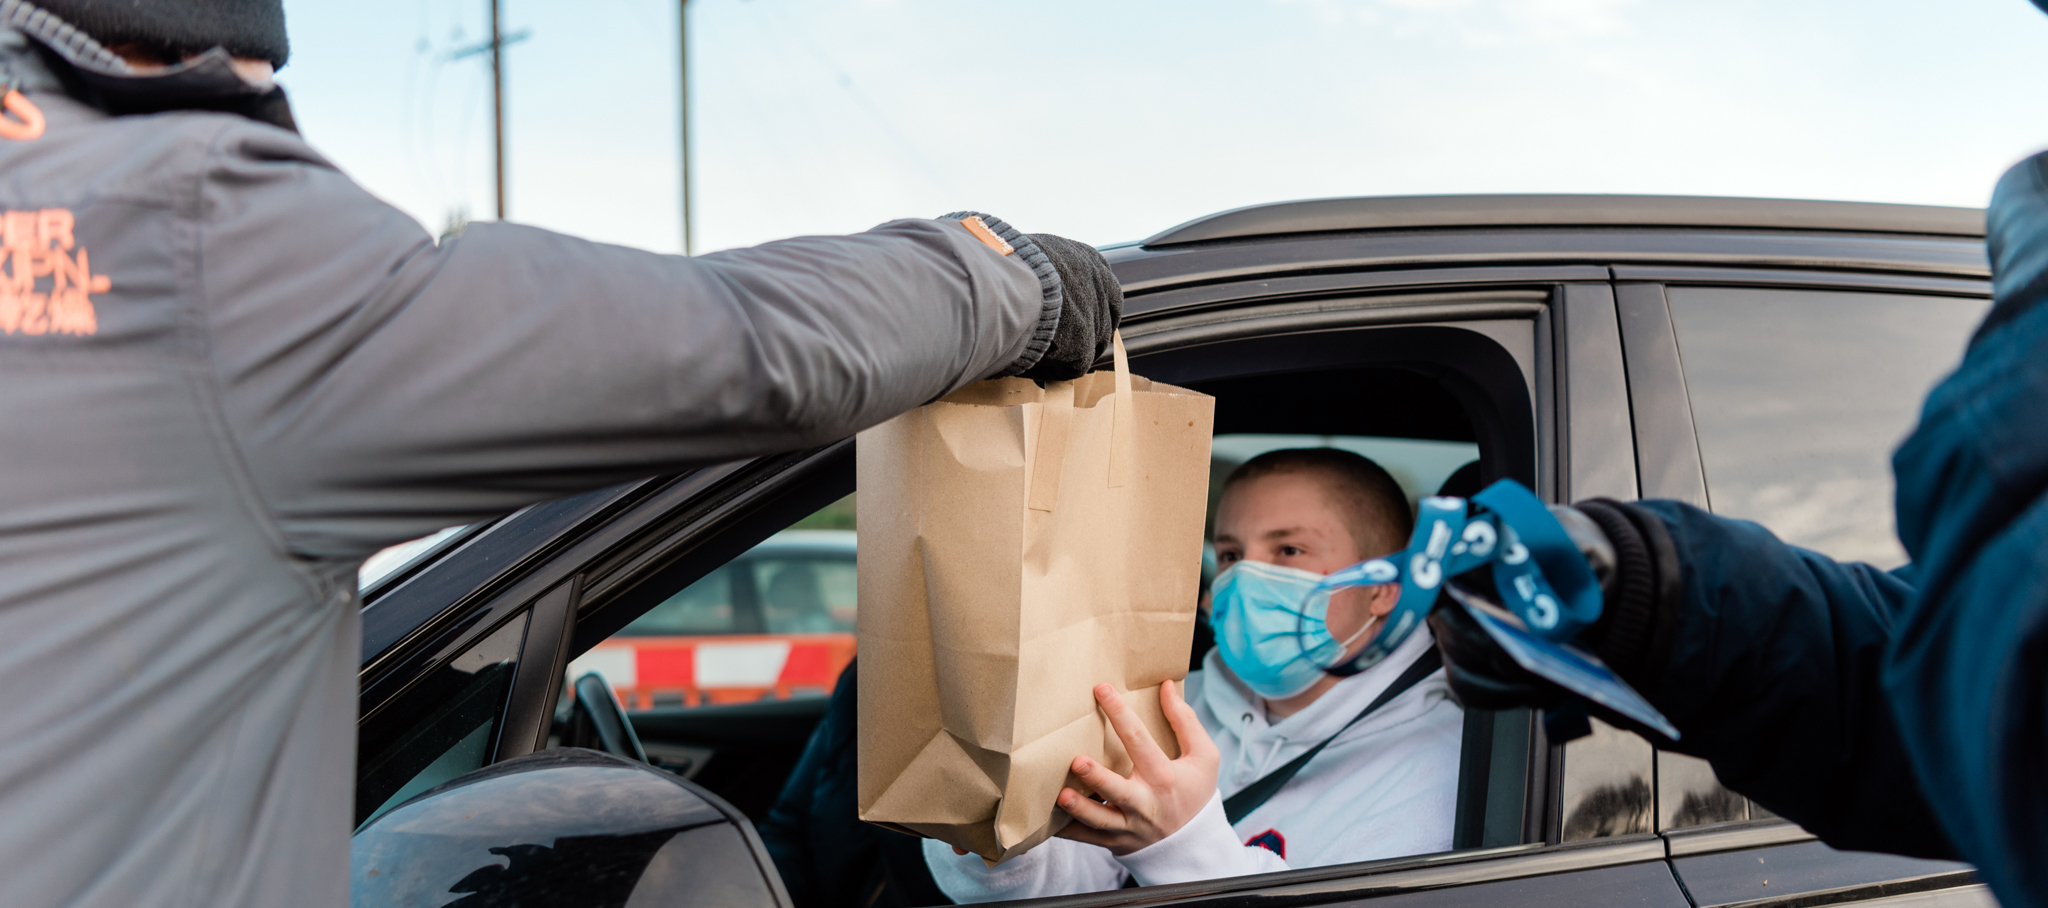 Young person in mask in a car being given takeaway to deliver to client